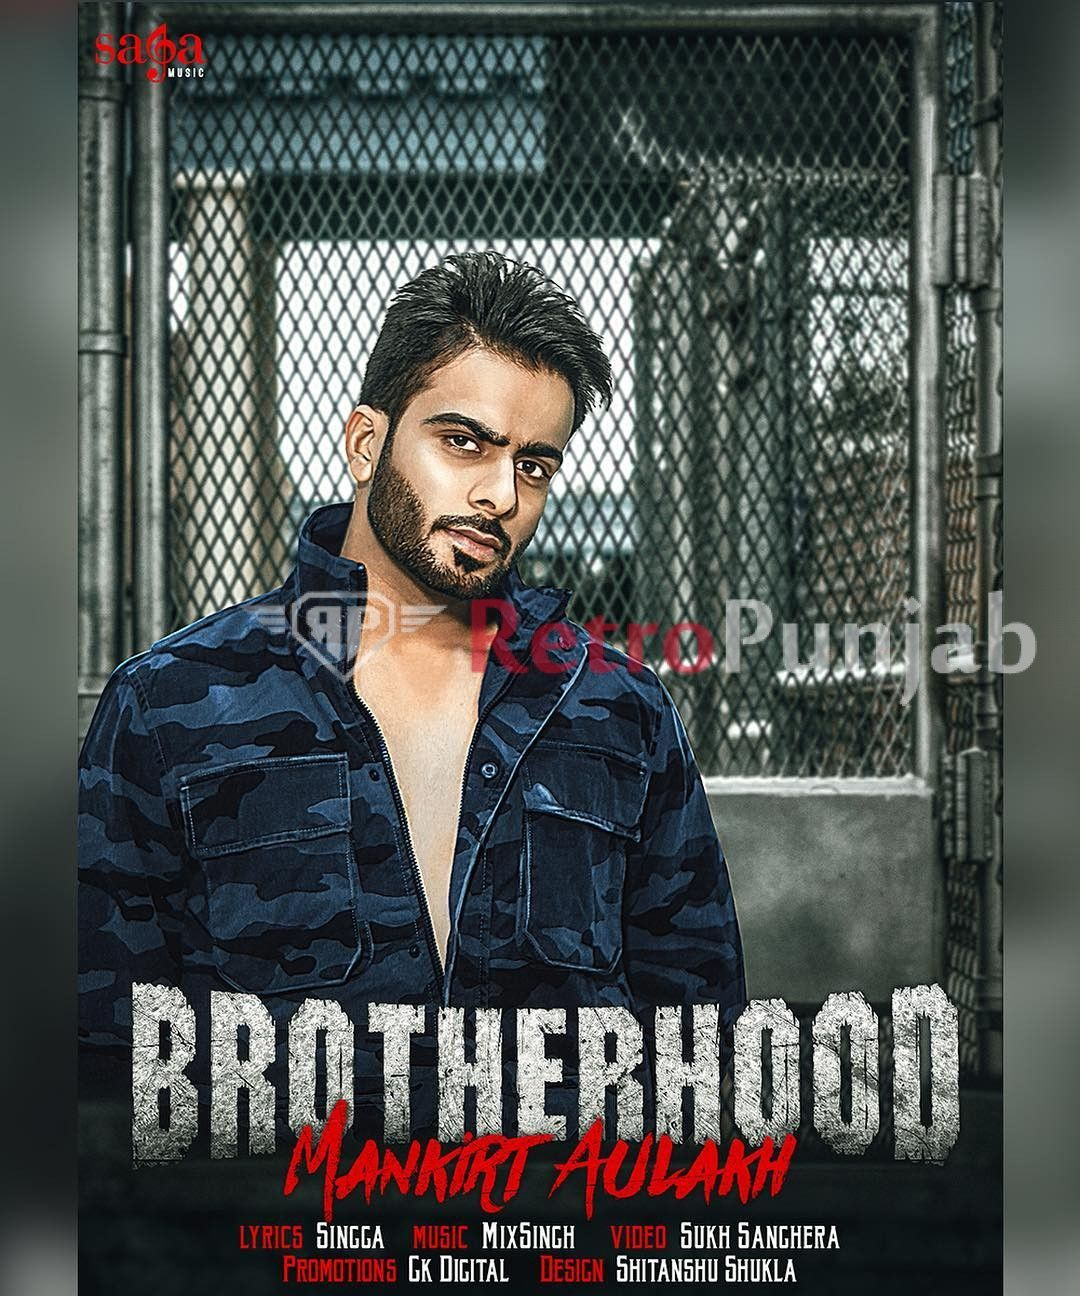 Brotherhood Mp3 Is A New Punjabi Song By Mankirt Aulakh Brotherhood The Relationship Between Brothers Song Sung Mp3 Song Download New Song Download Mp3 Song